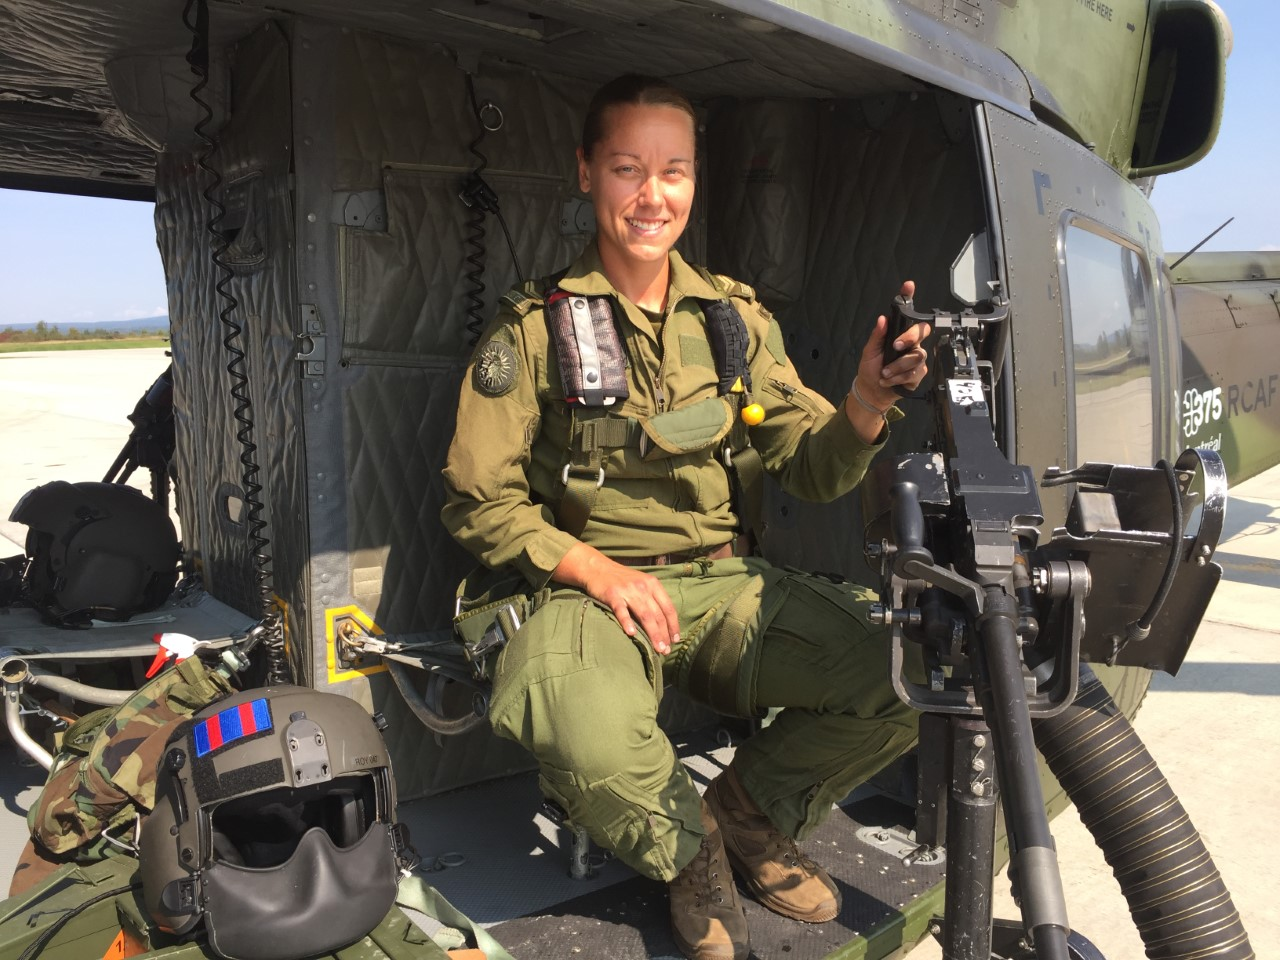 Corporal Alexandra Roy was the first woman to serve with 430 Tactical Helicopter Squadron as door gunner on board CH-146 Griffon helicopters. PHOTO: Courtesy ADSUM newspaper